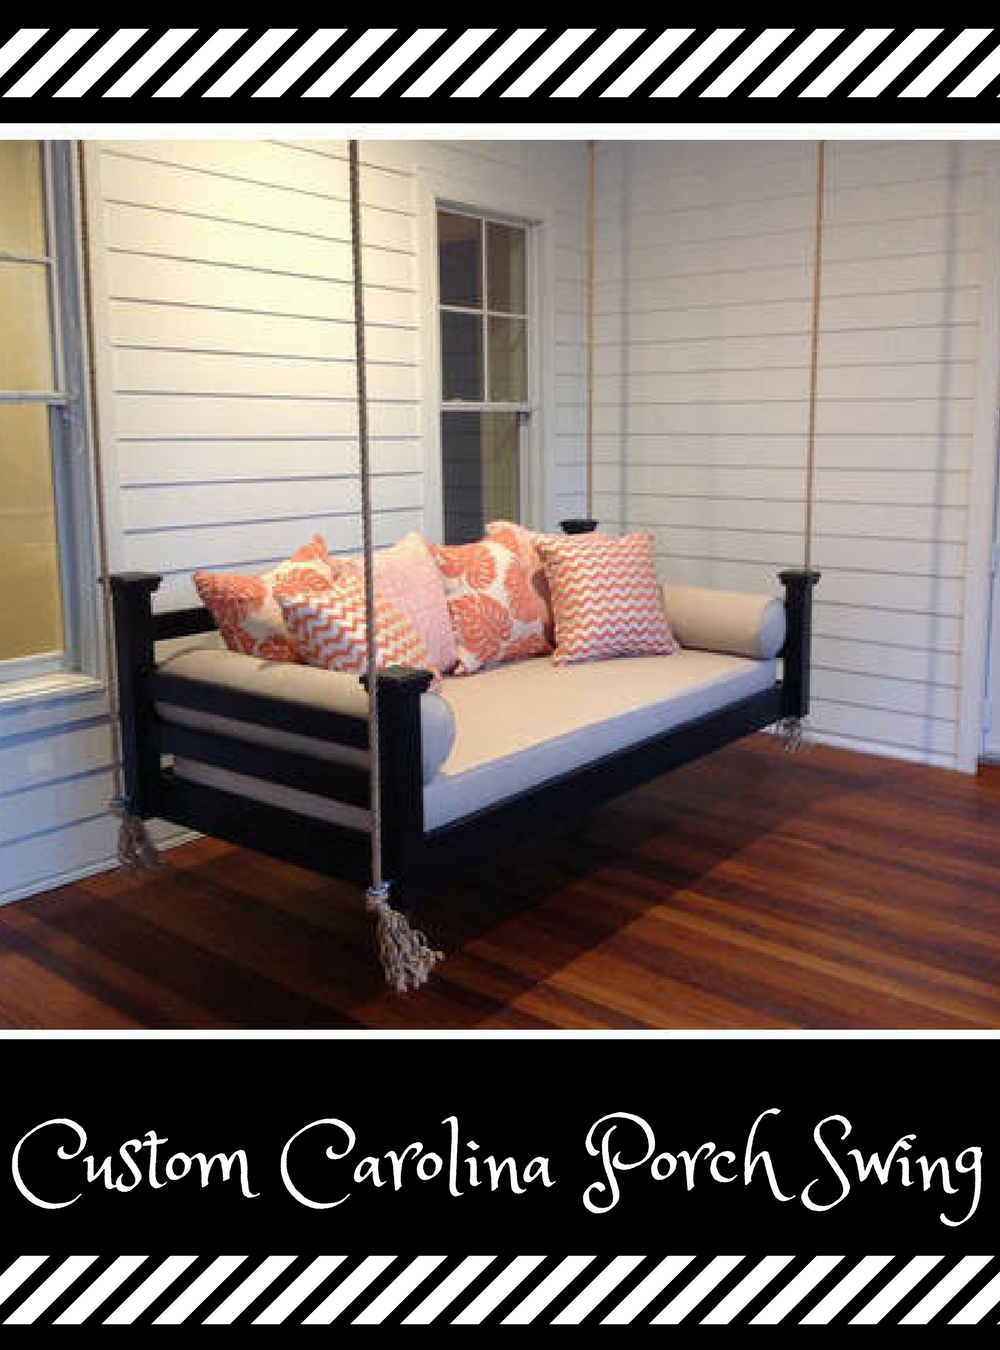 gorgeous porch swing inspiration here porch porchswing on porch swing ideas inspiration id=55783